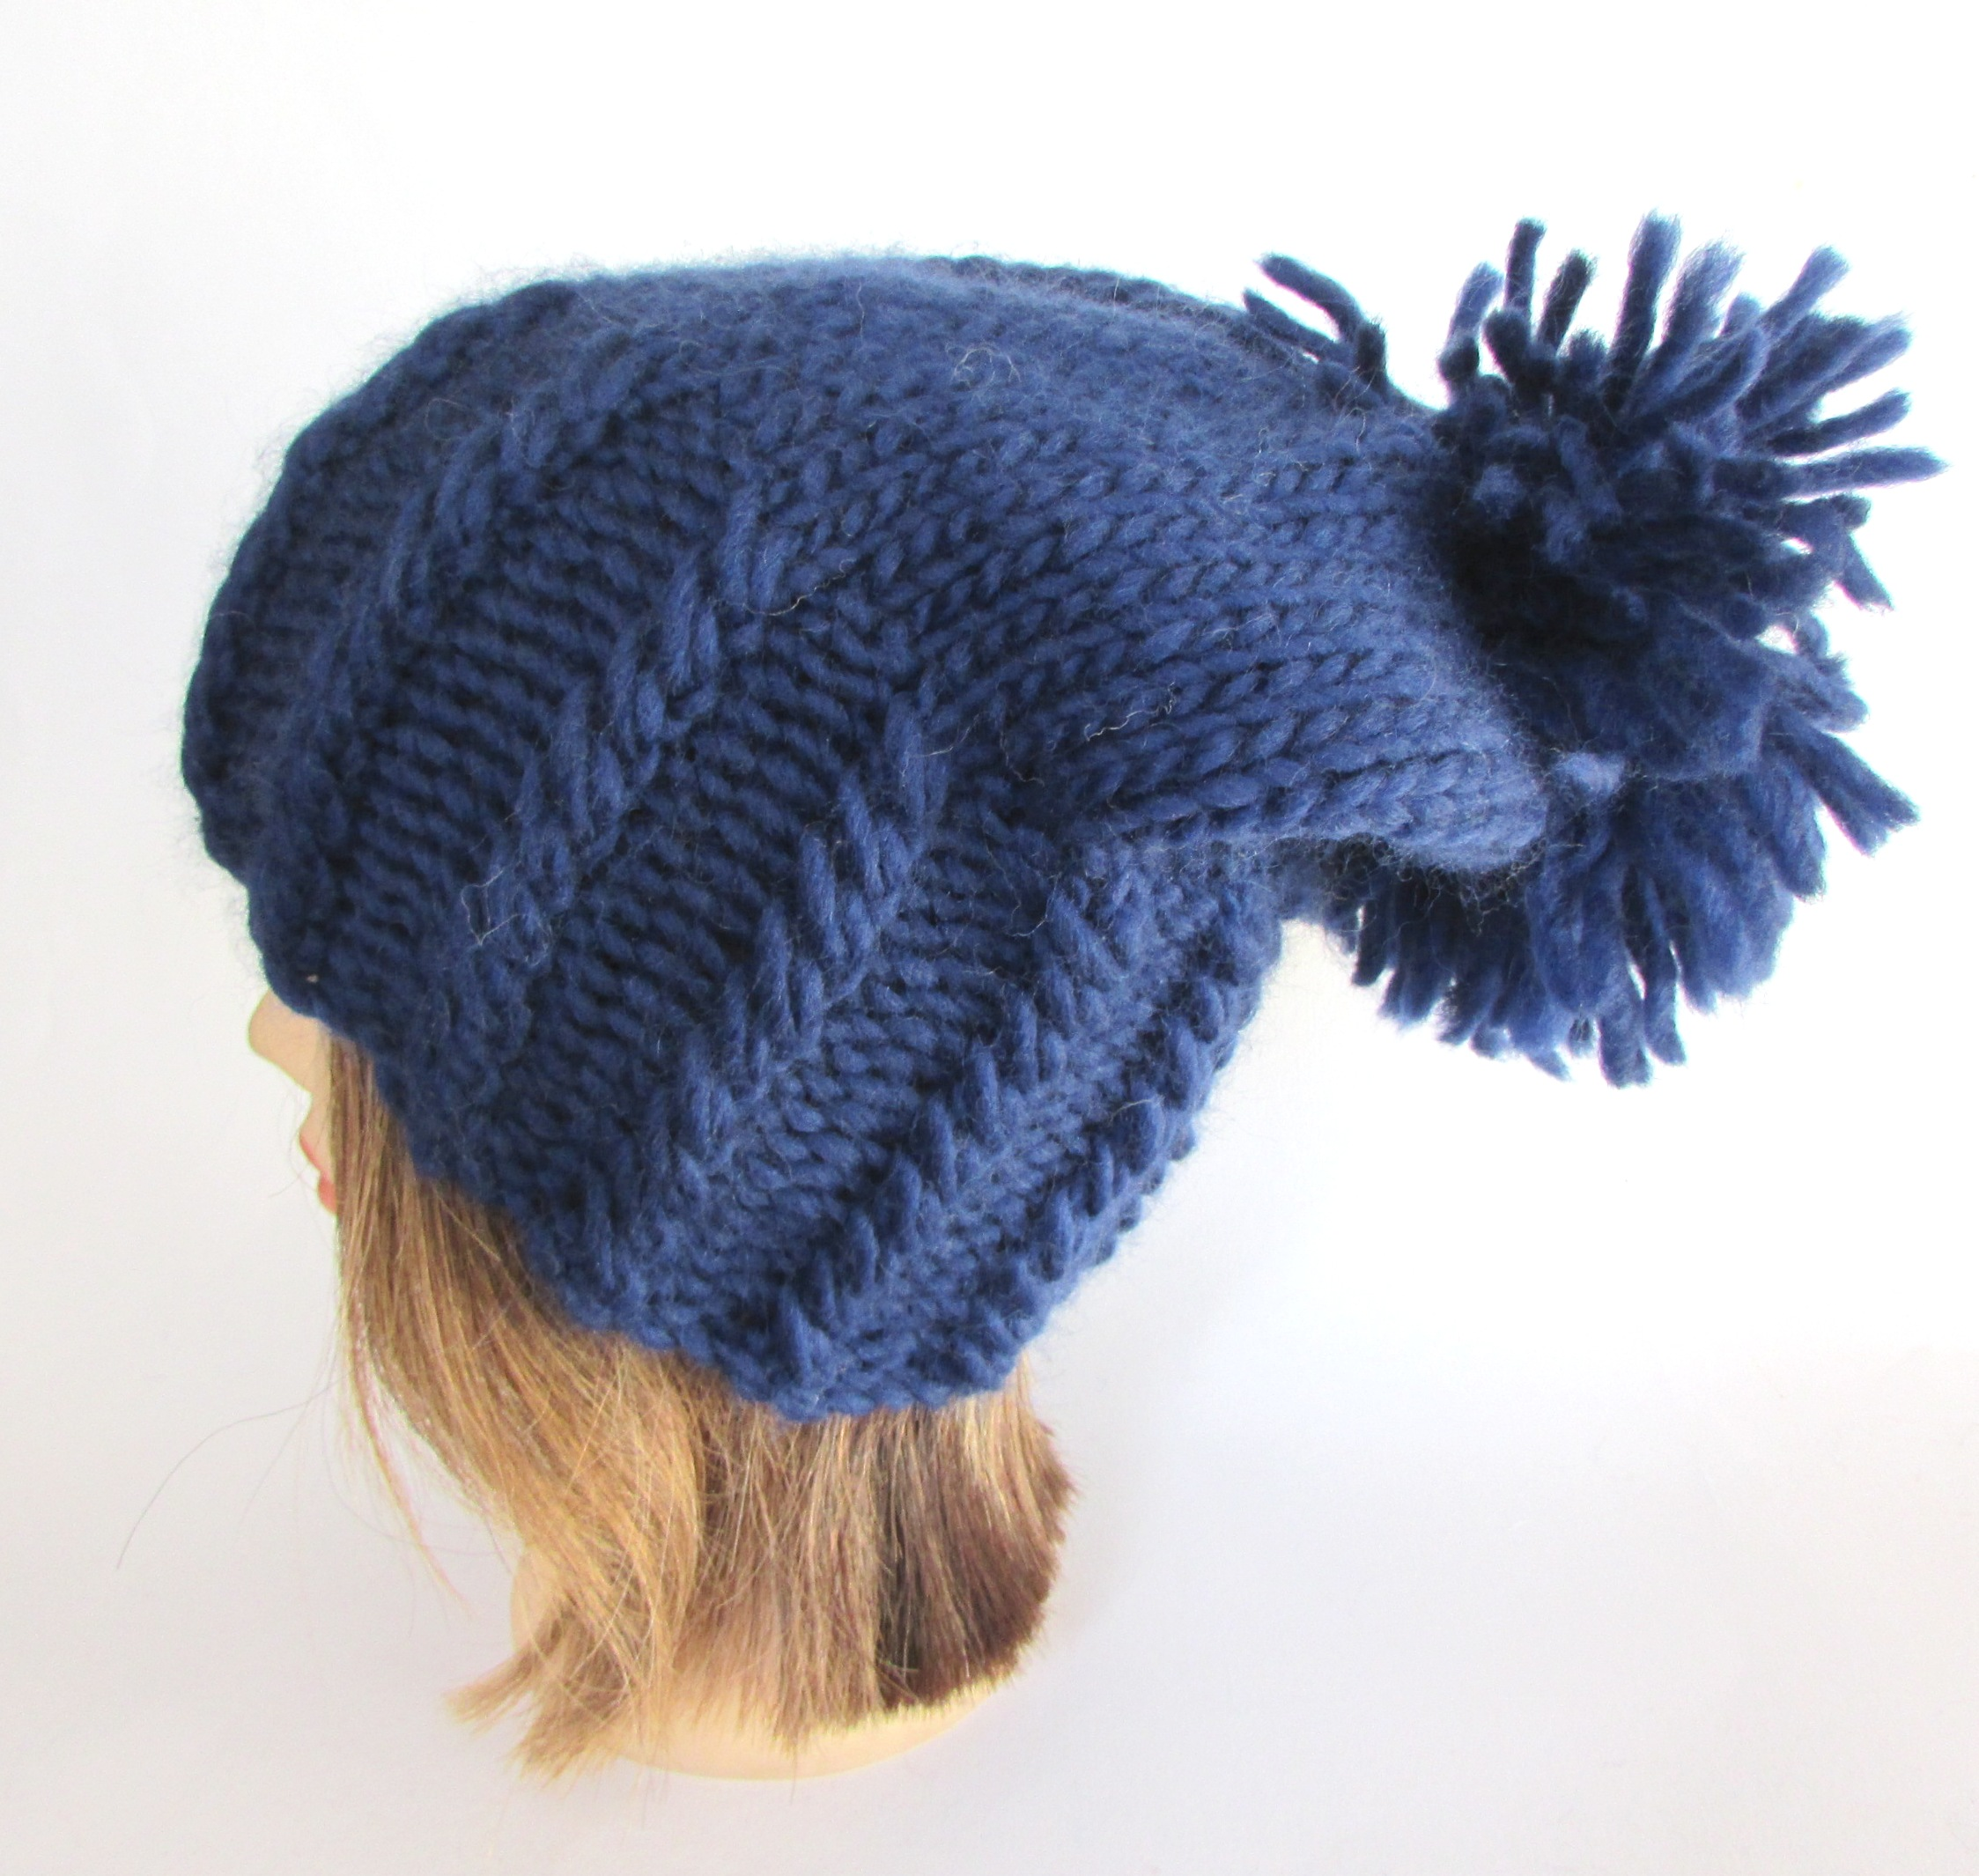 59ae5acf6 Irish hand knit navy blue hat with large pom pom - chunky knit fun slouchy  beanie hat - warm wool knit beanie hat - Irish knitwear by Johanna Crafts